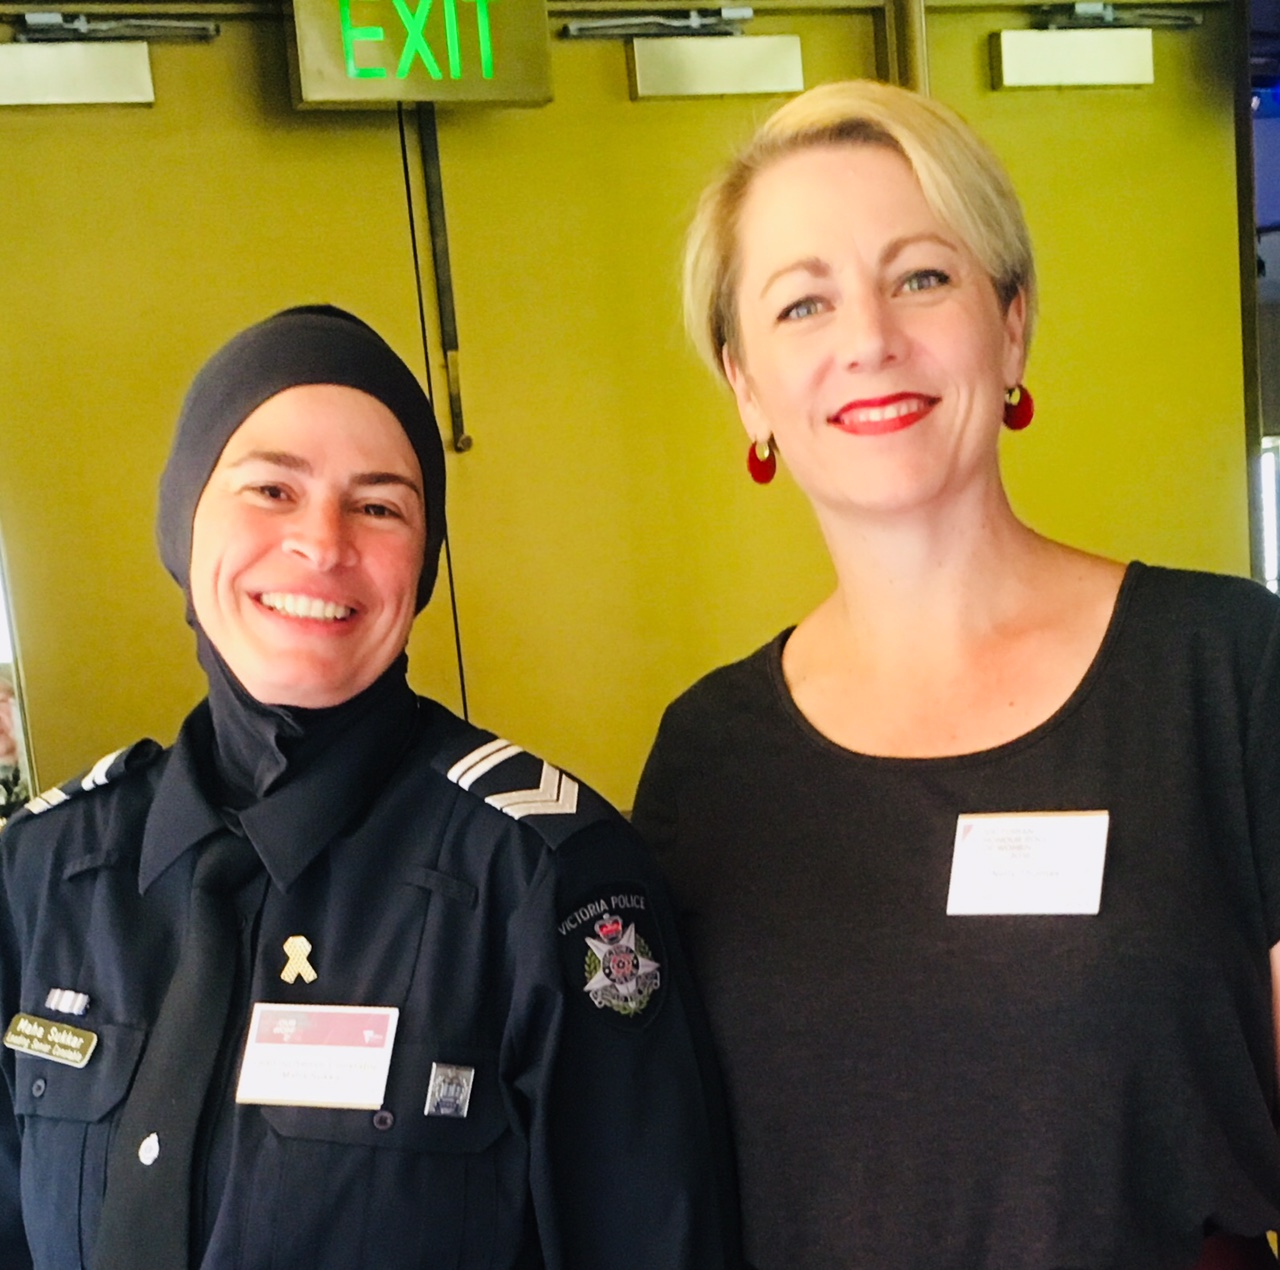 Author Nelly Thomas shown here with Maha Sukar - the first Australian Police Officer to wear a Hijab while on duty.